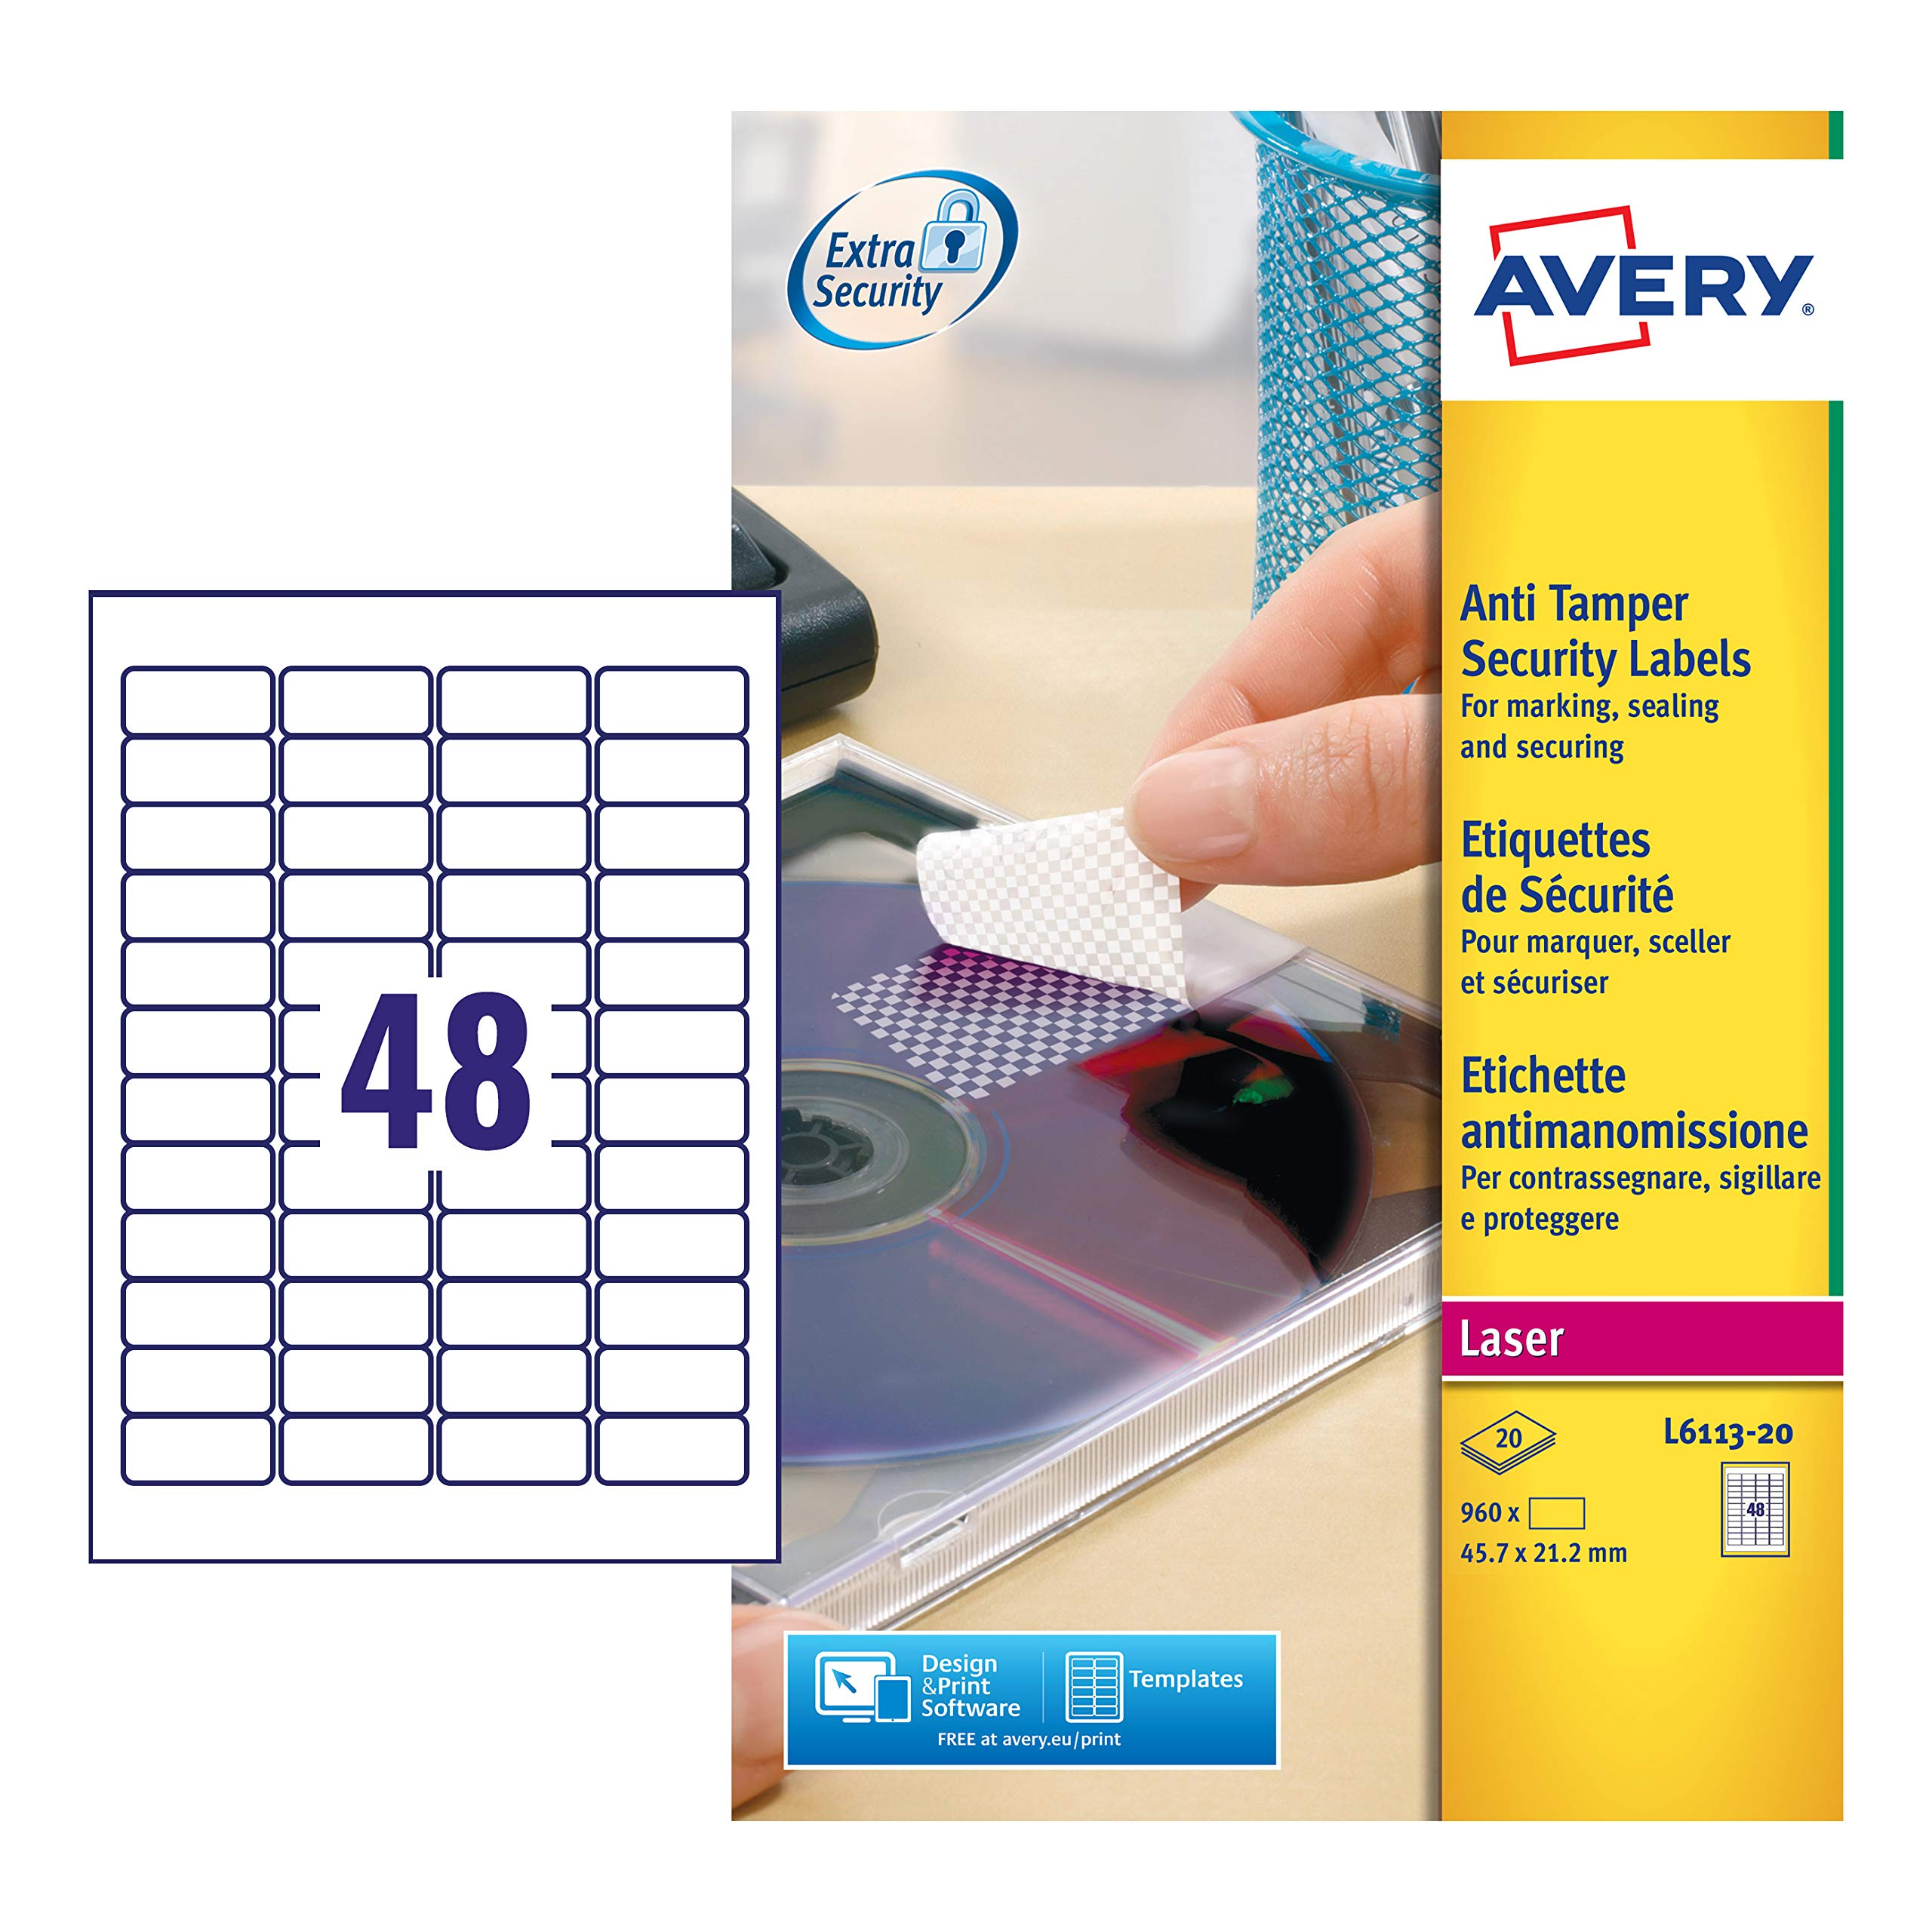 Avery España L6113-20 - Pack de 20 folios de etiquetas anti-manipulación, 45.7 x 21.2 mm, color blanco: Amazon.es: Oficina y papelería